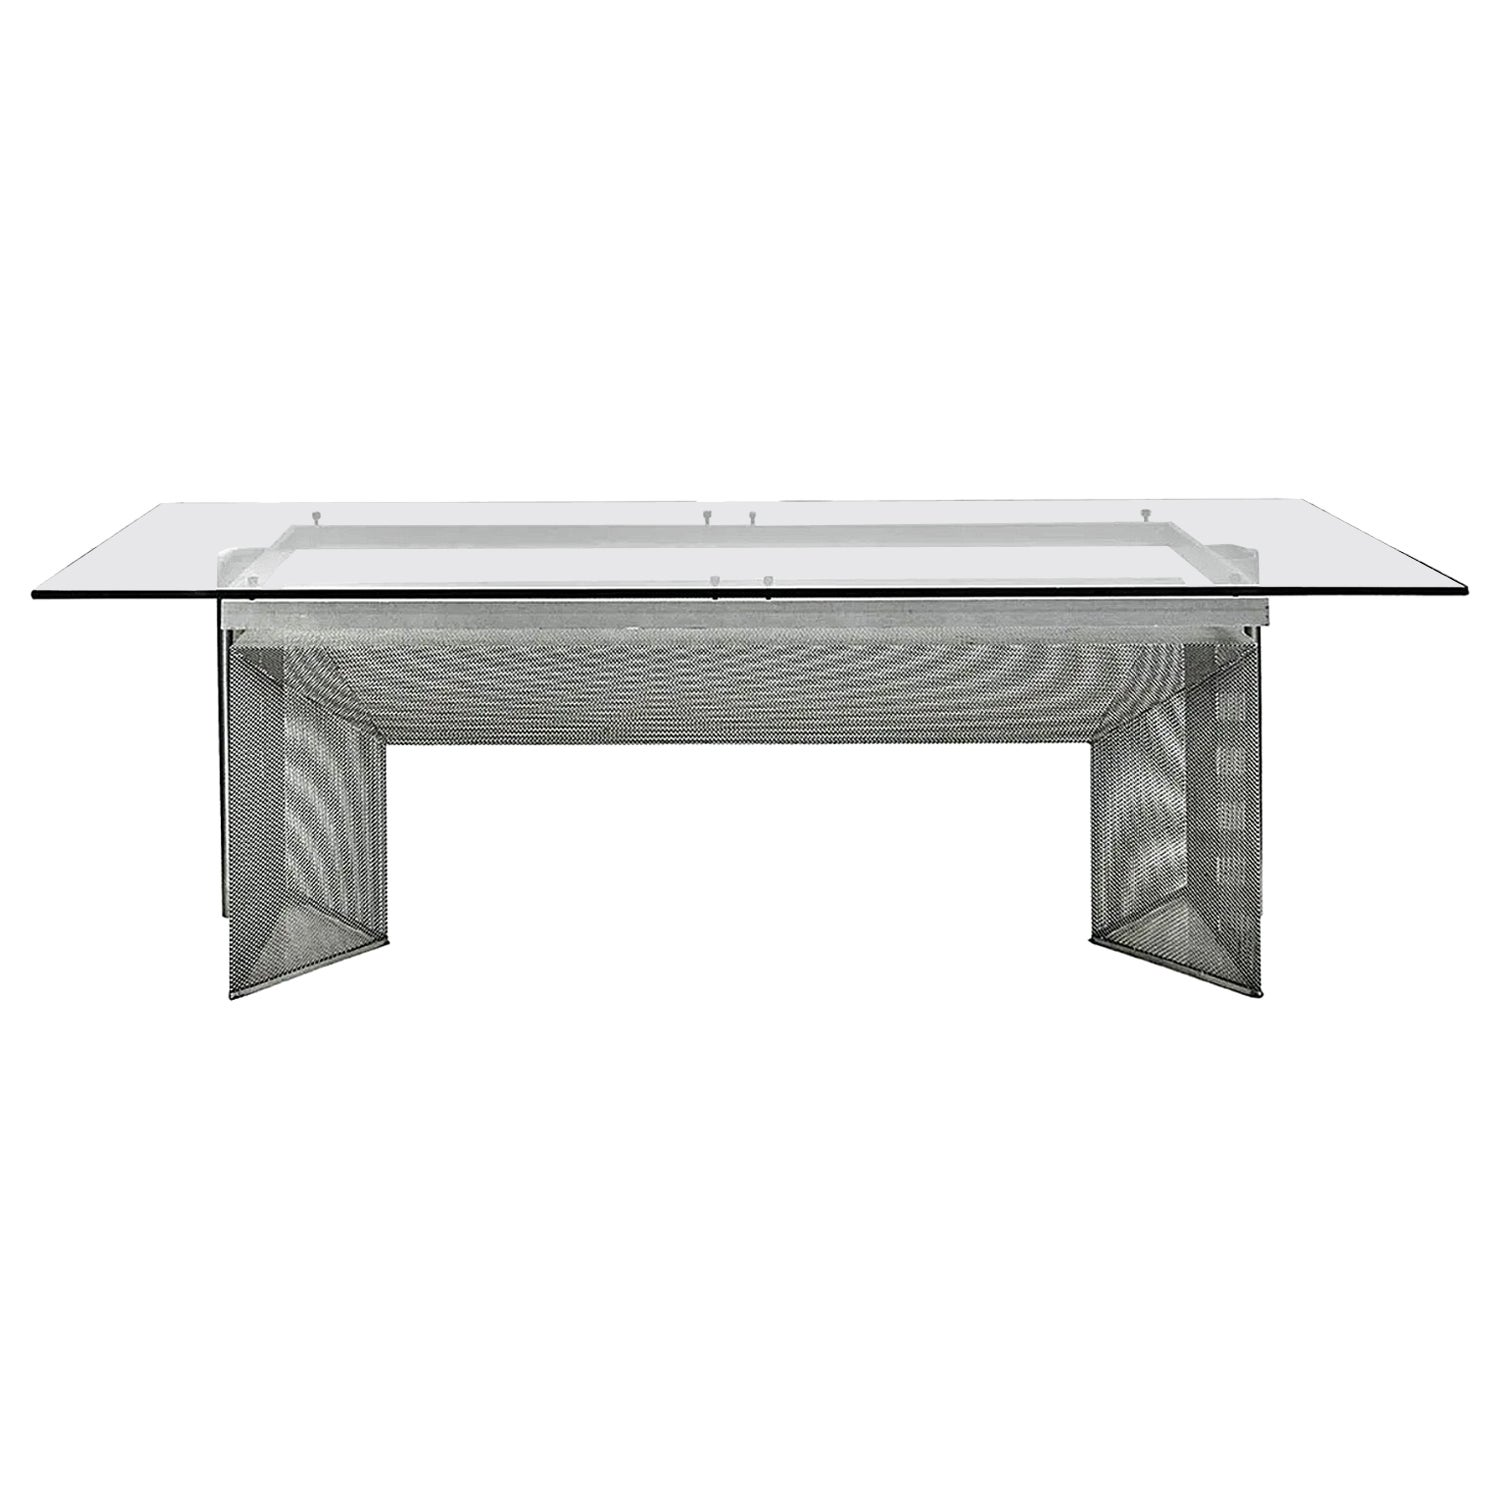 Large Design Desk in Steel and Glass, circa 1970-1980